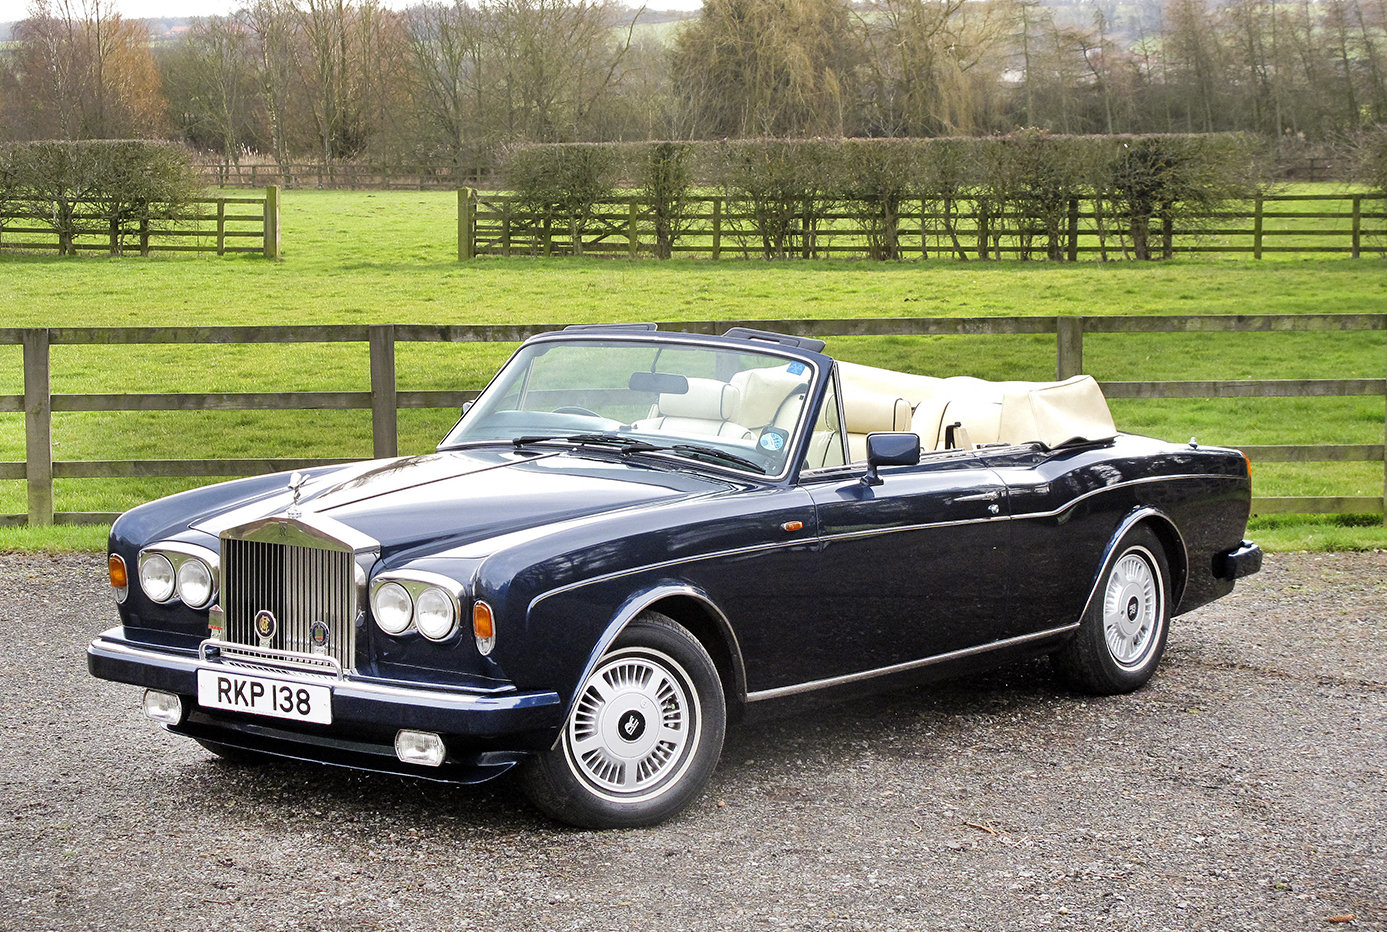 1989 Rolls-Royce Corniche II Convertible **SOLD** For Sale (picture 1 of 6)